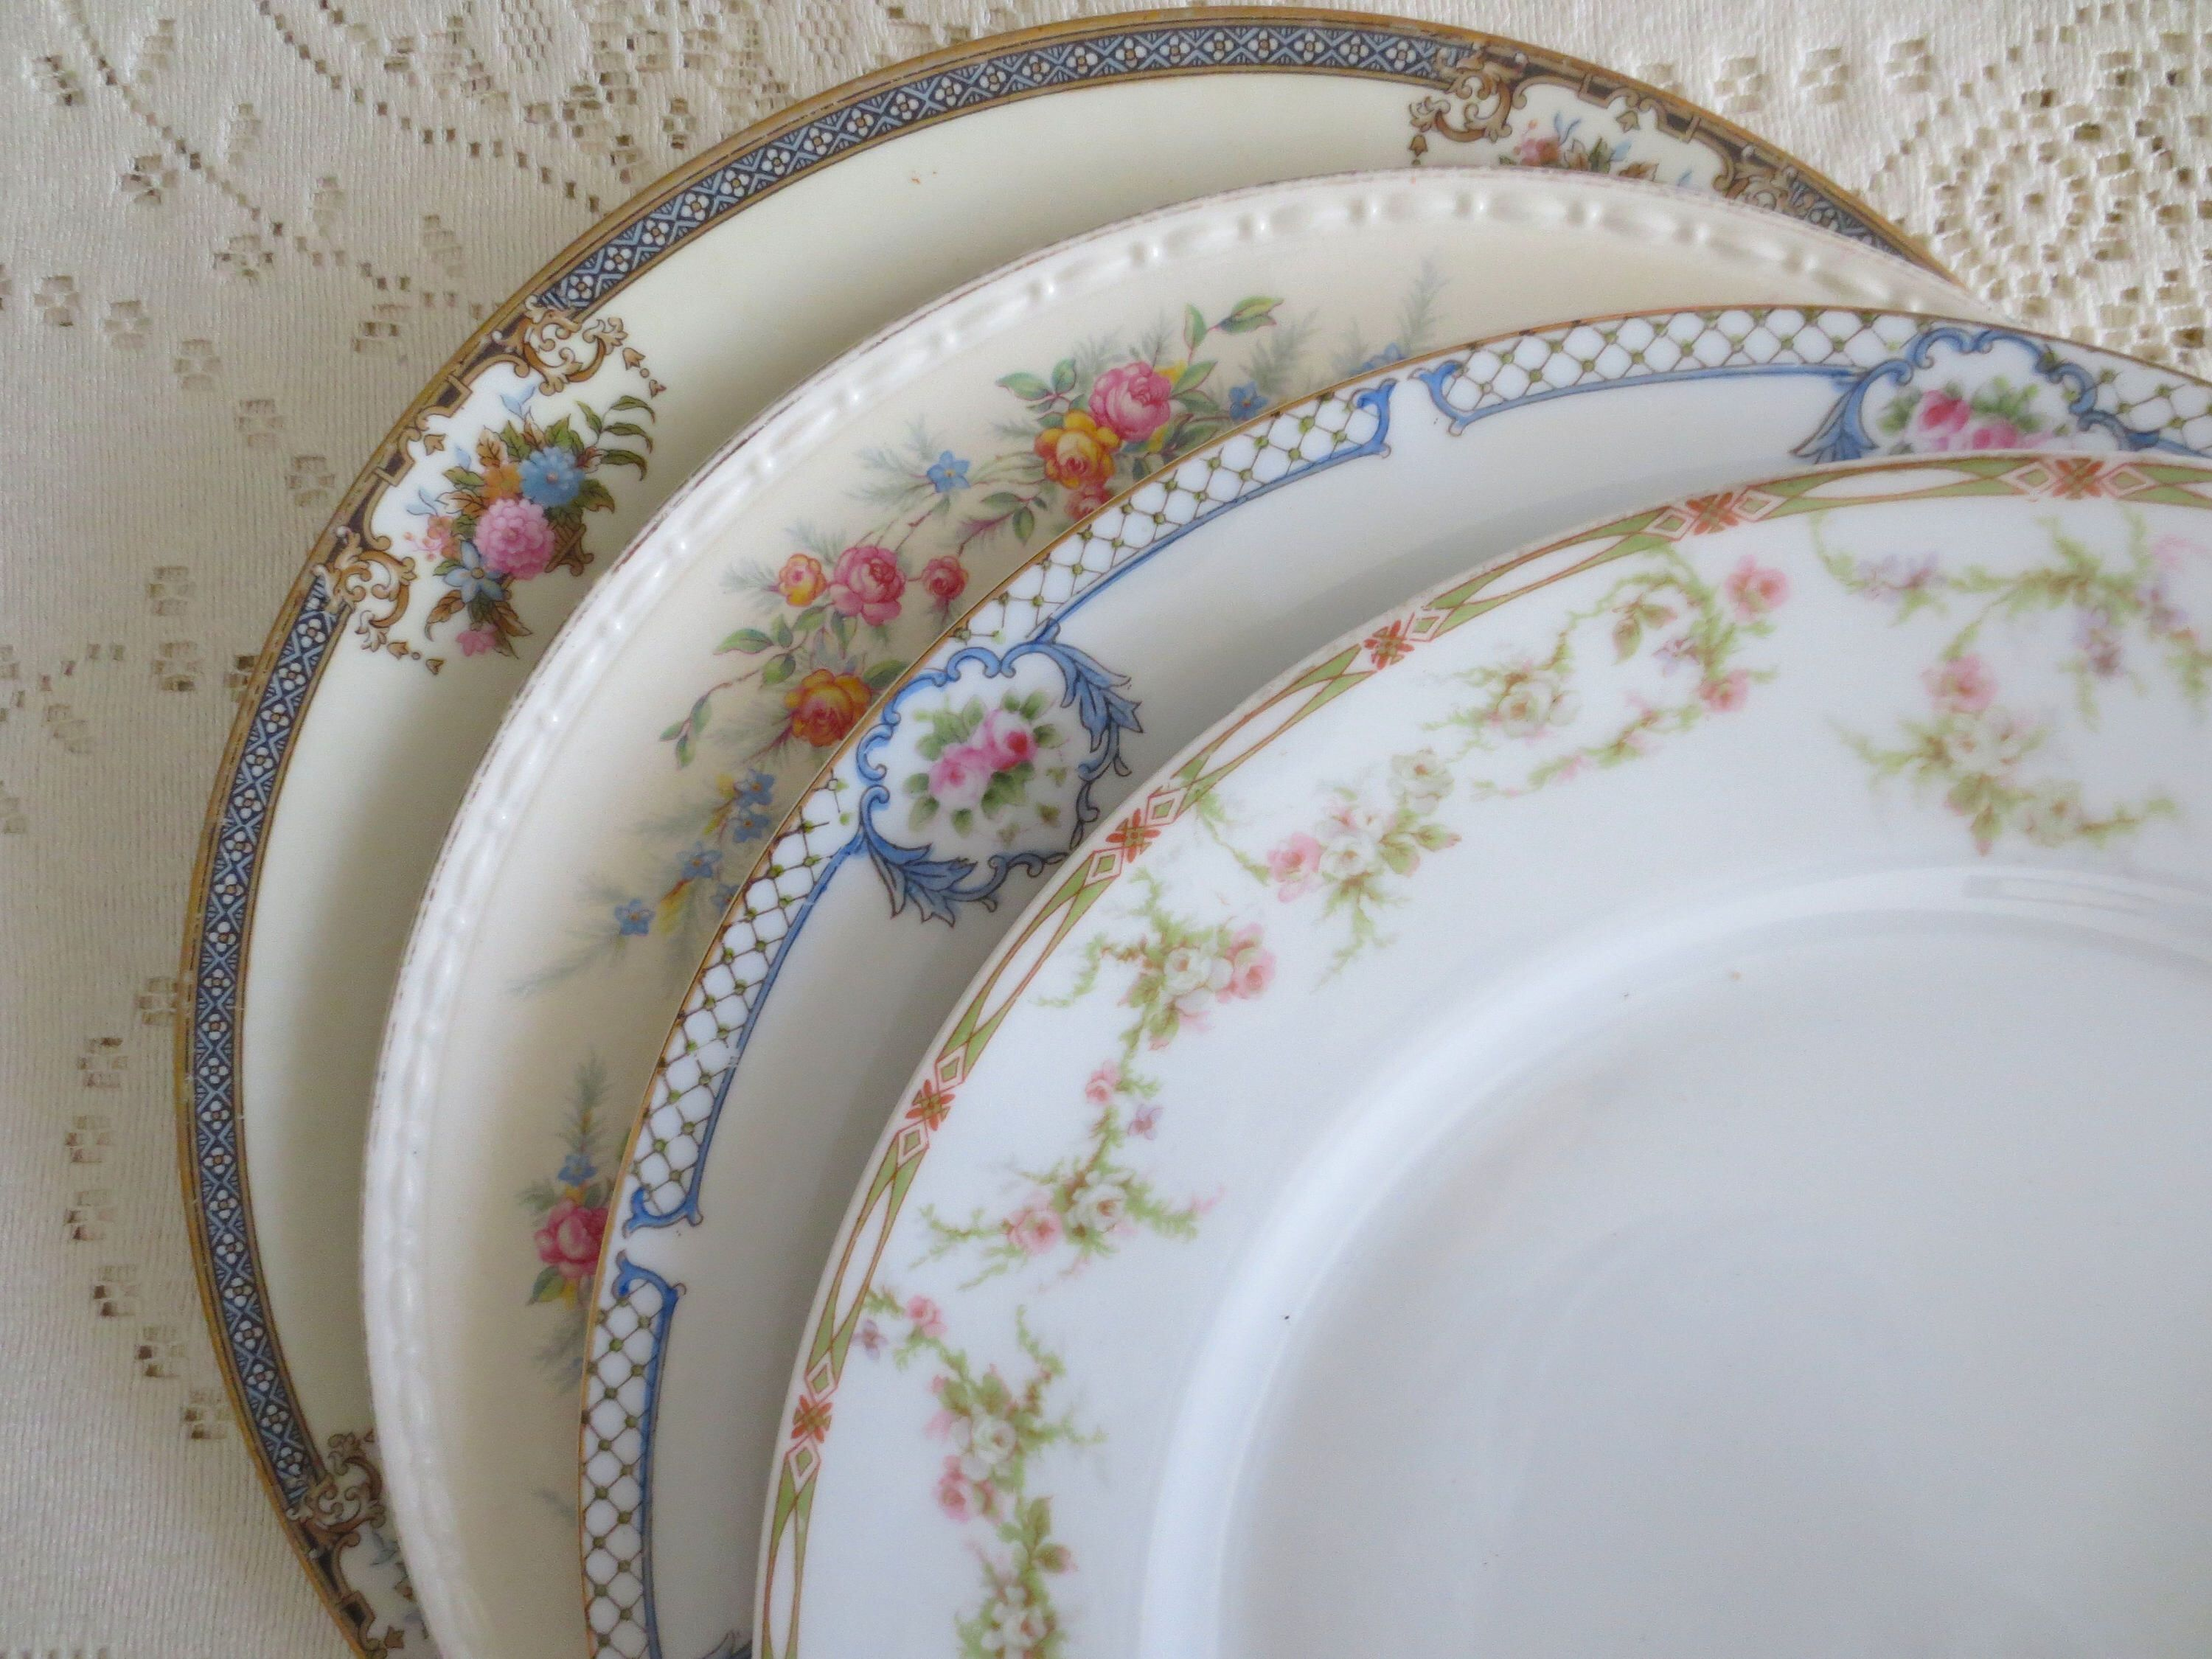 Set Of 4 Mismatched Dinner Plates Fl China Mix Match Shabby Chic Dishes Dinnerware Alice In Wonderland Tea Party By Dorothyandcleo